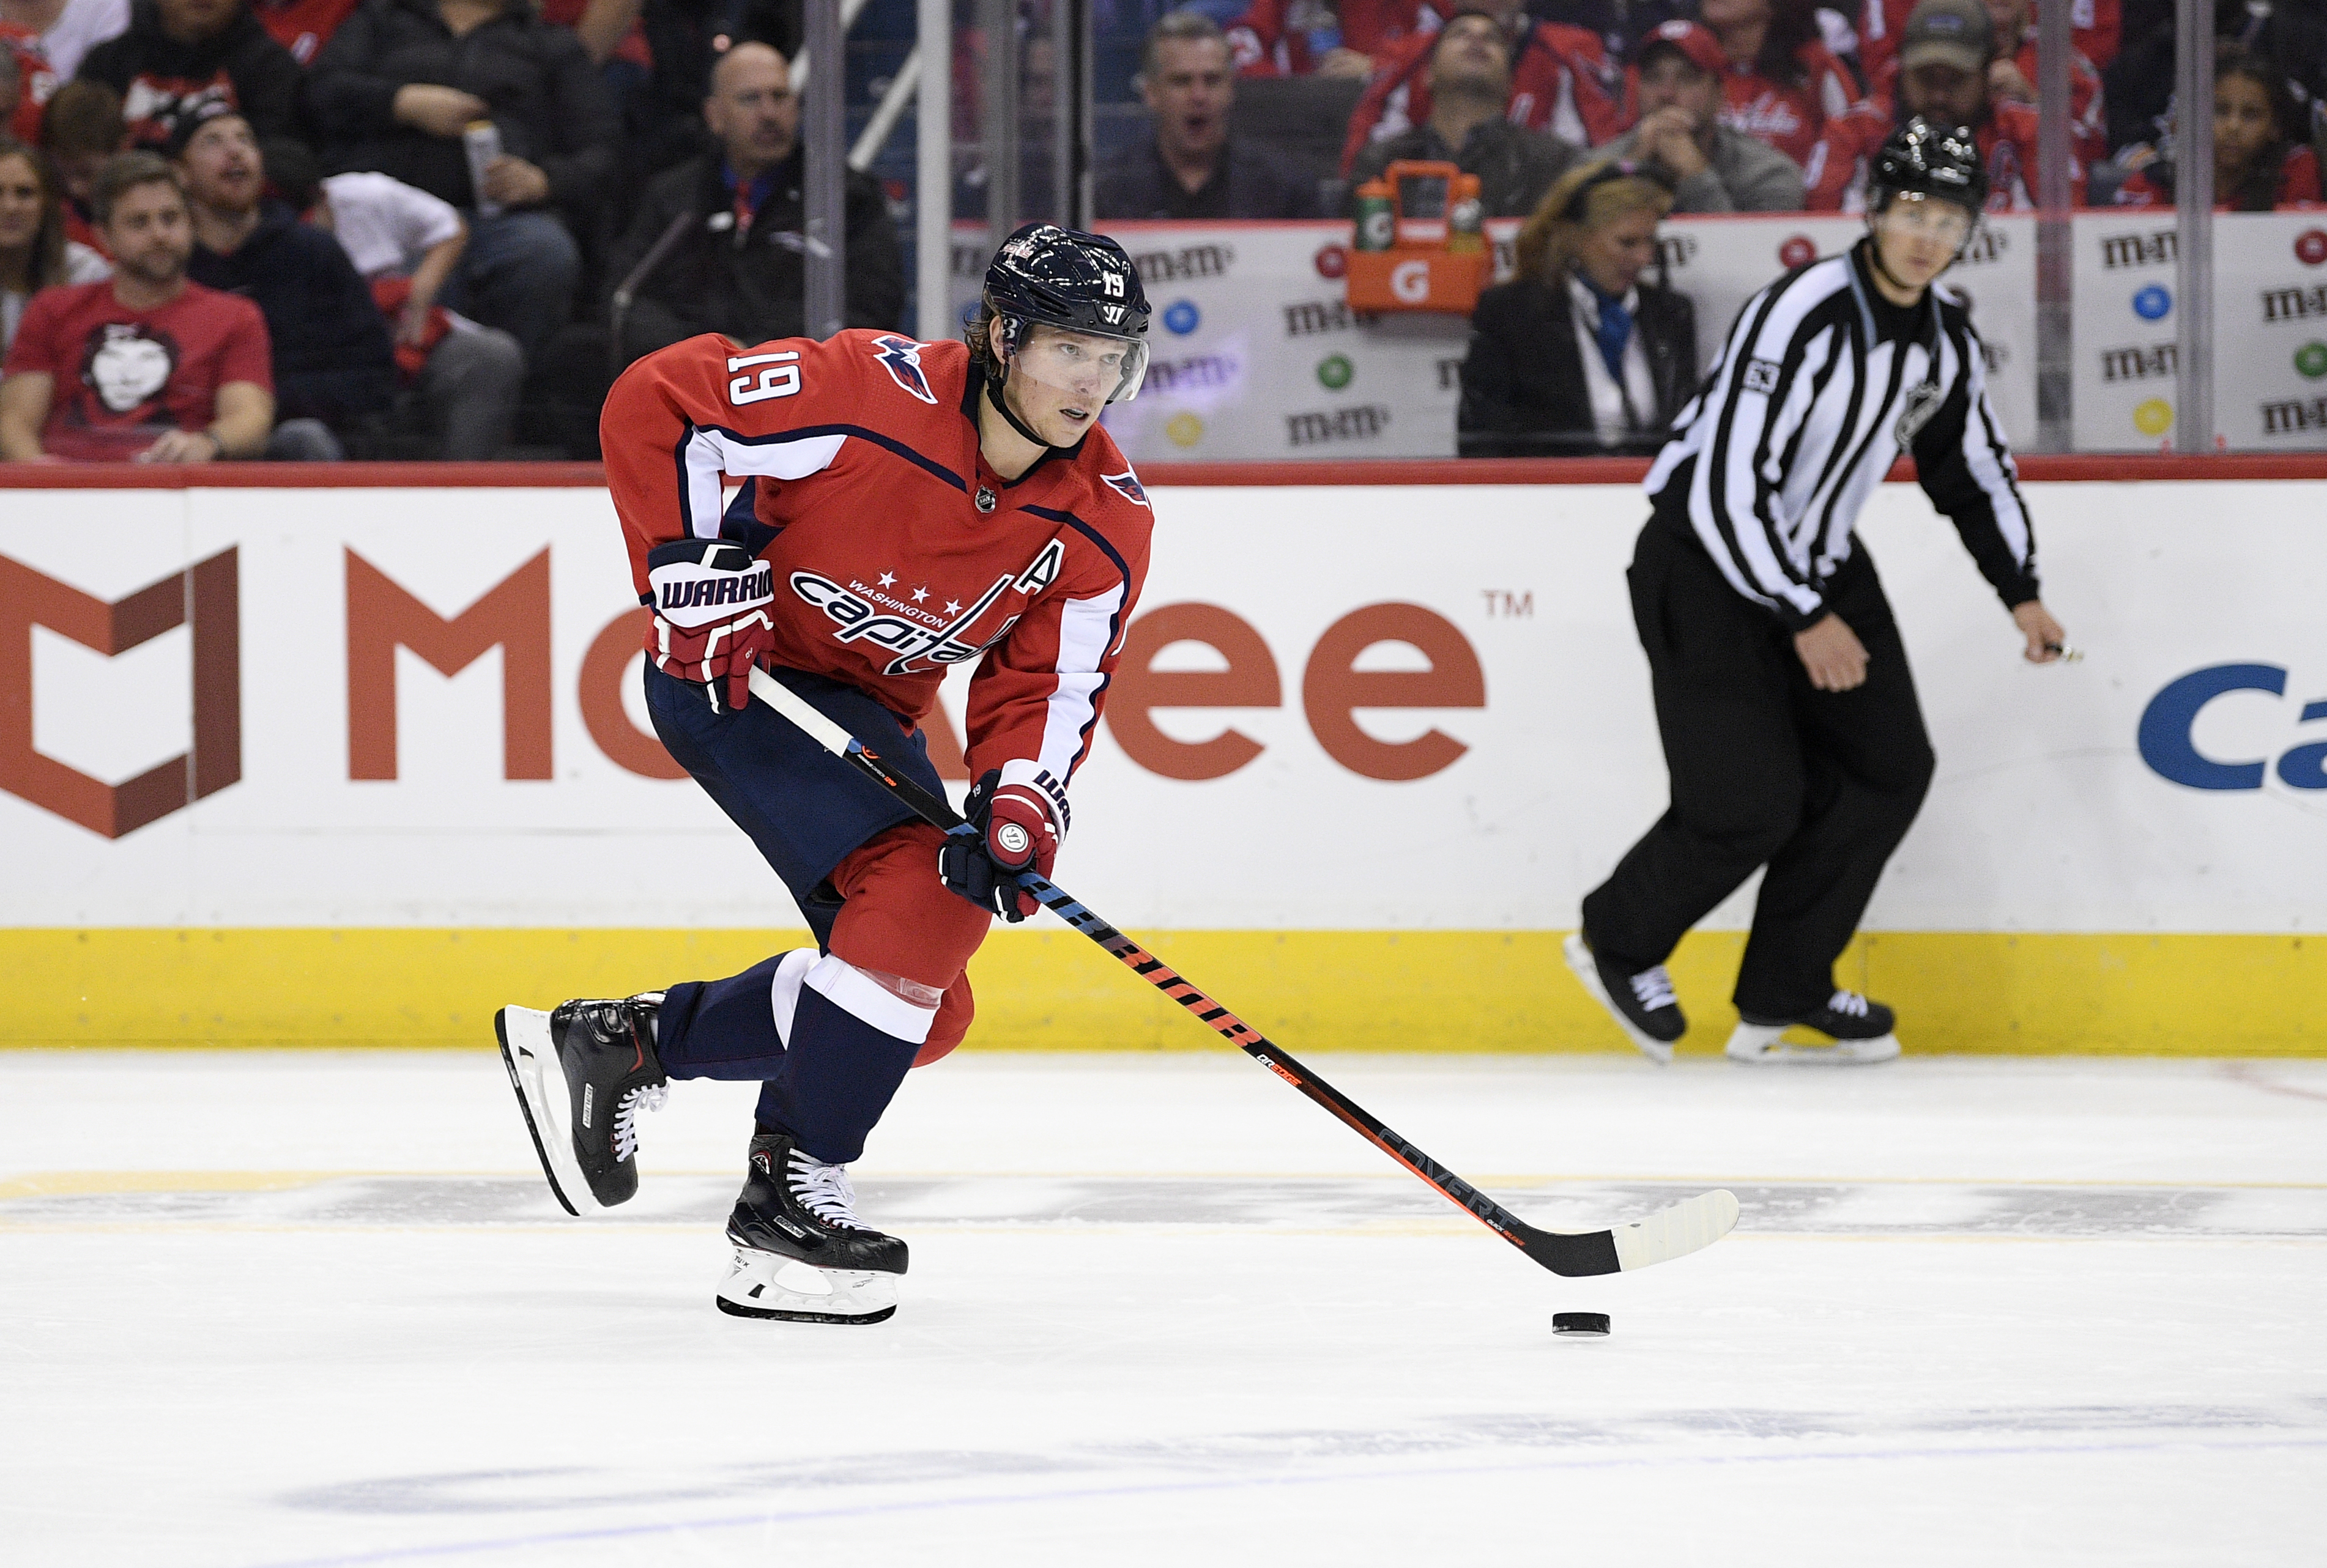 42d7b12b444 Nicklas Backstrom eclipses 600 career assists for Capitals - Washington  Times